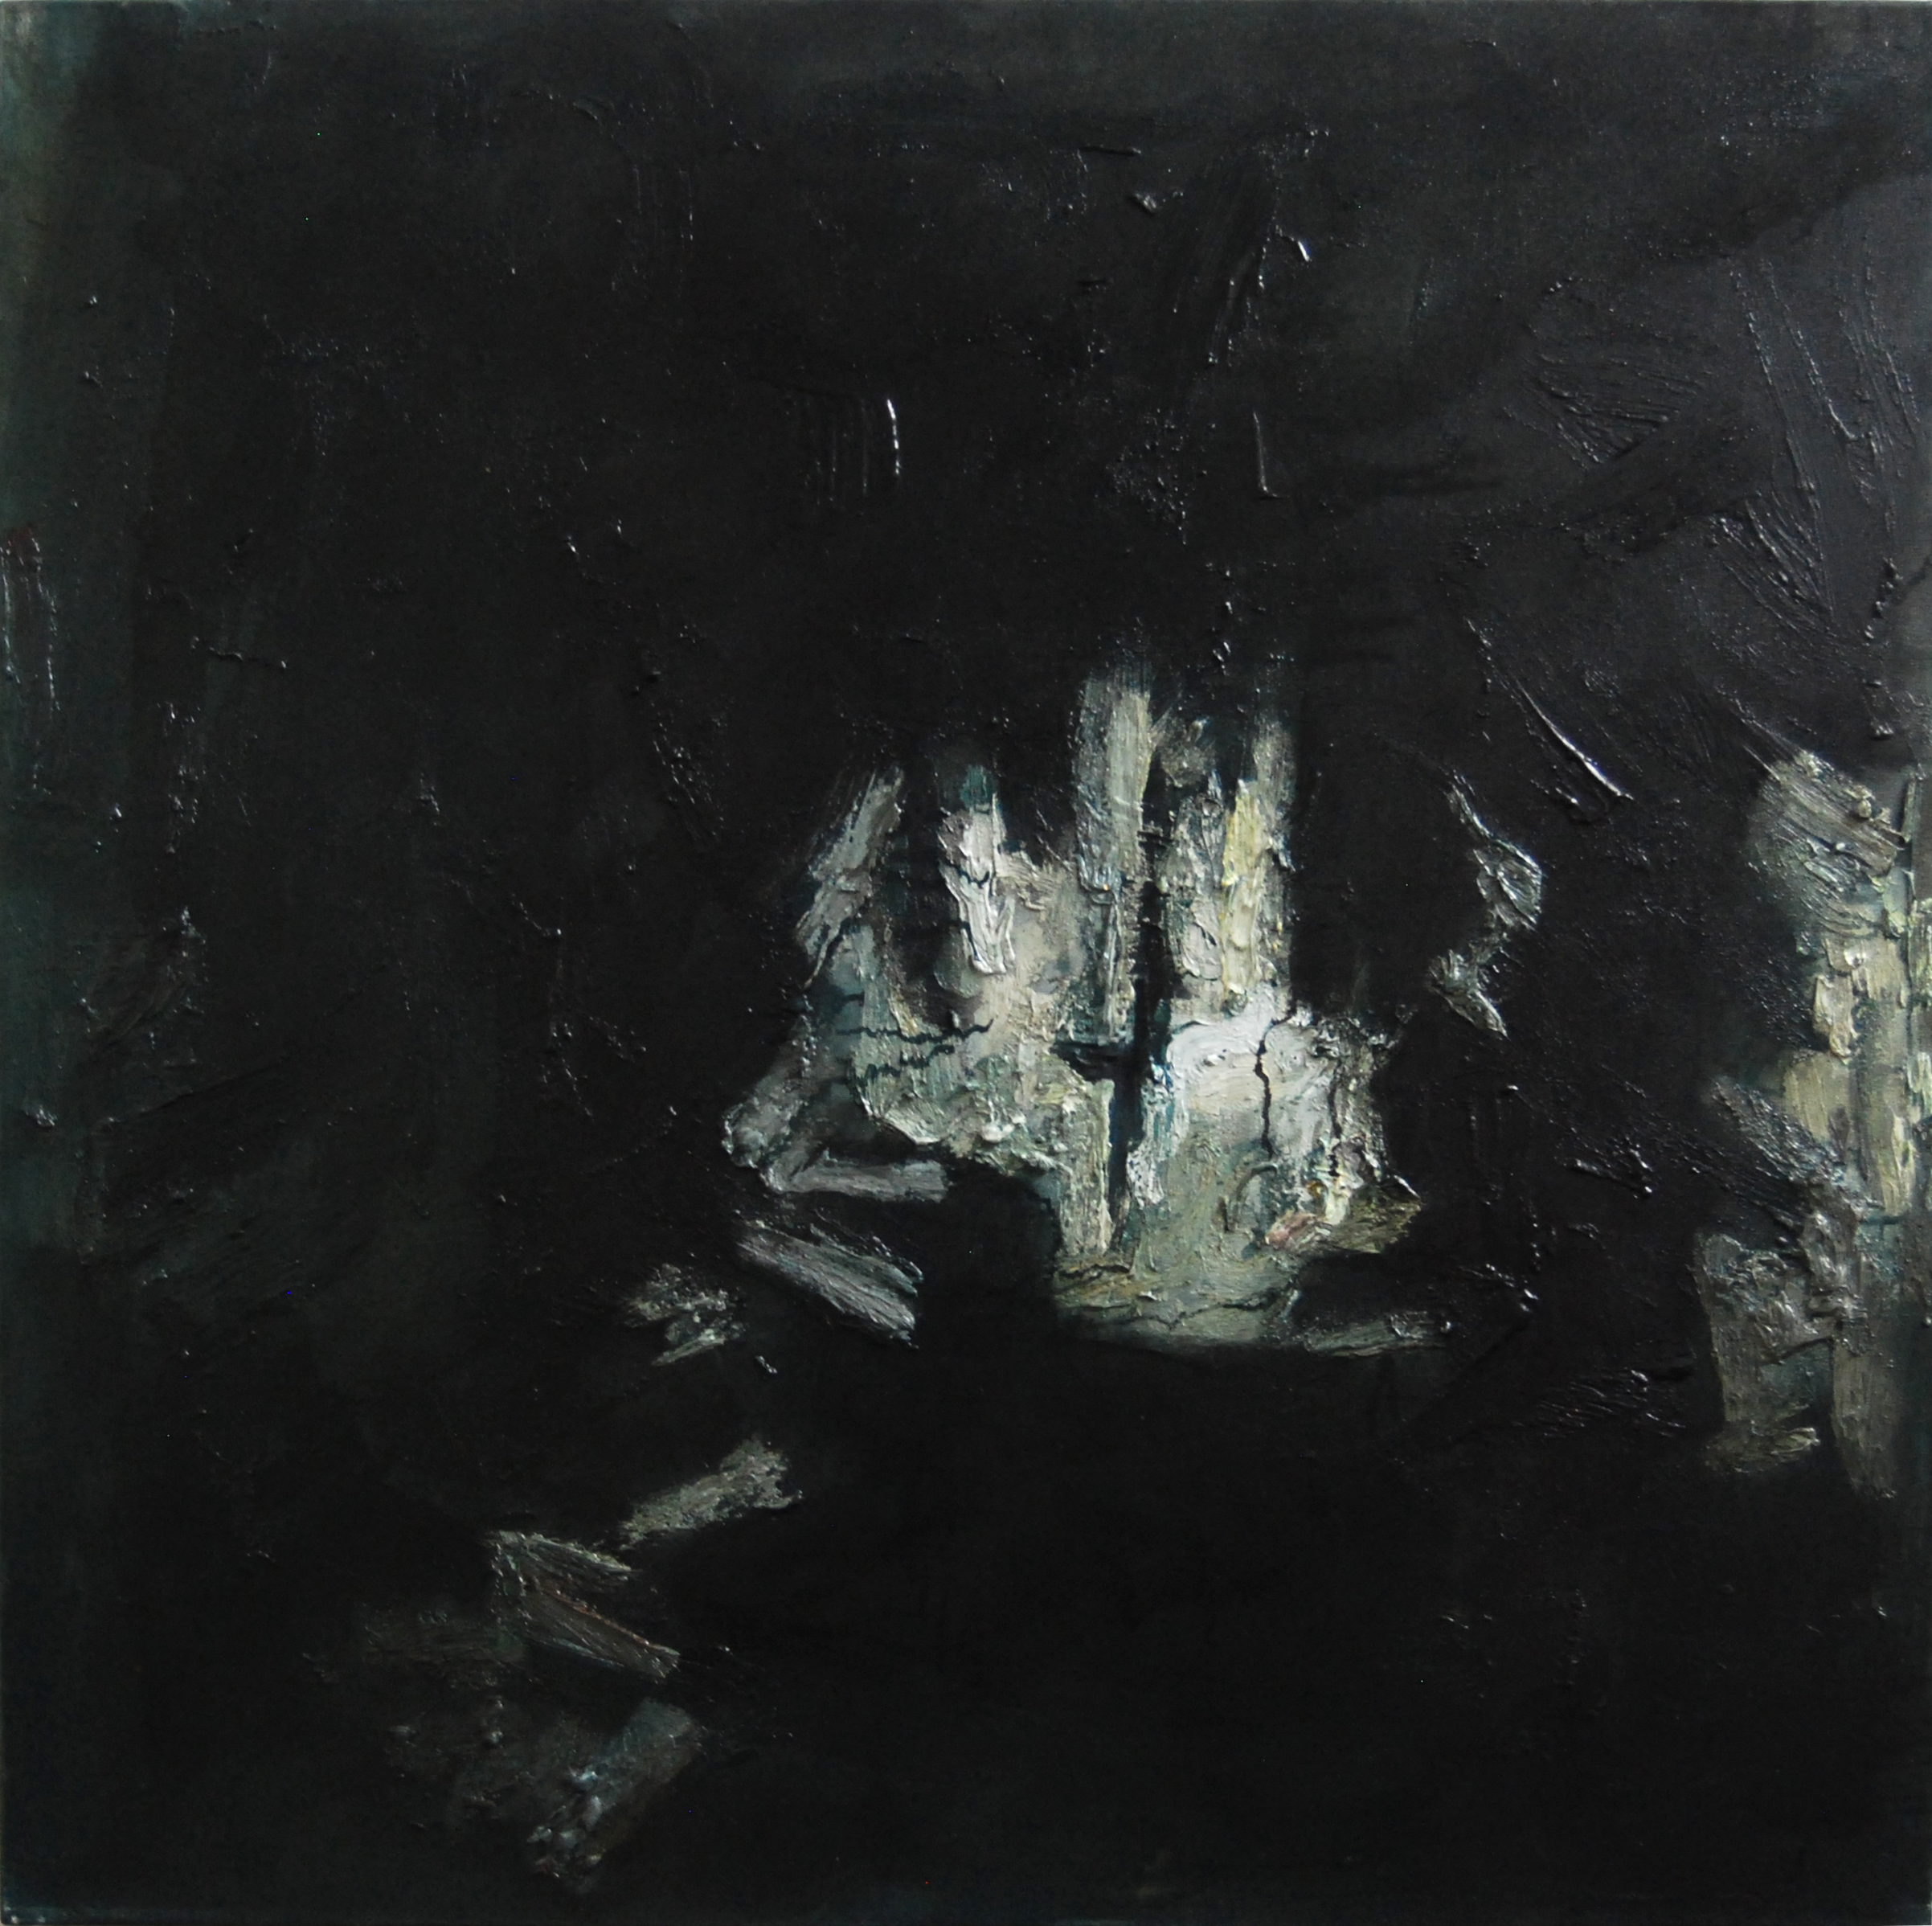 <em>On the way III</em>. 2010. Oil on canvas. 100x100cm